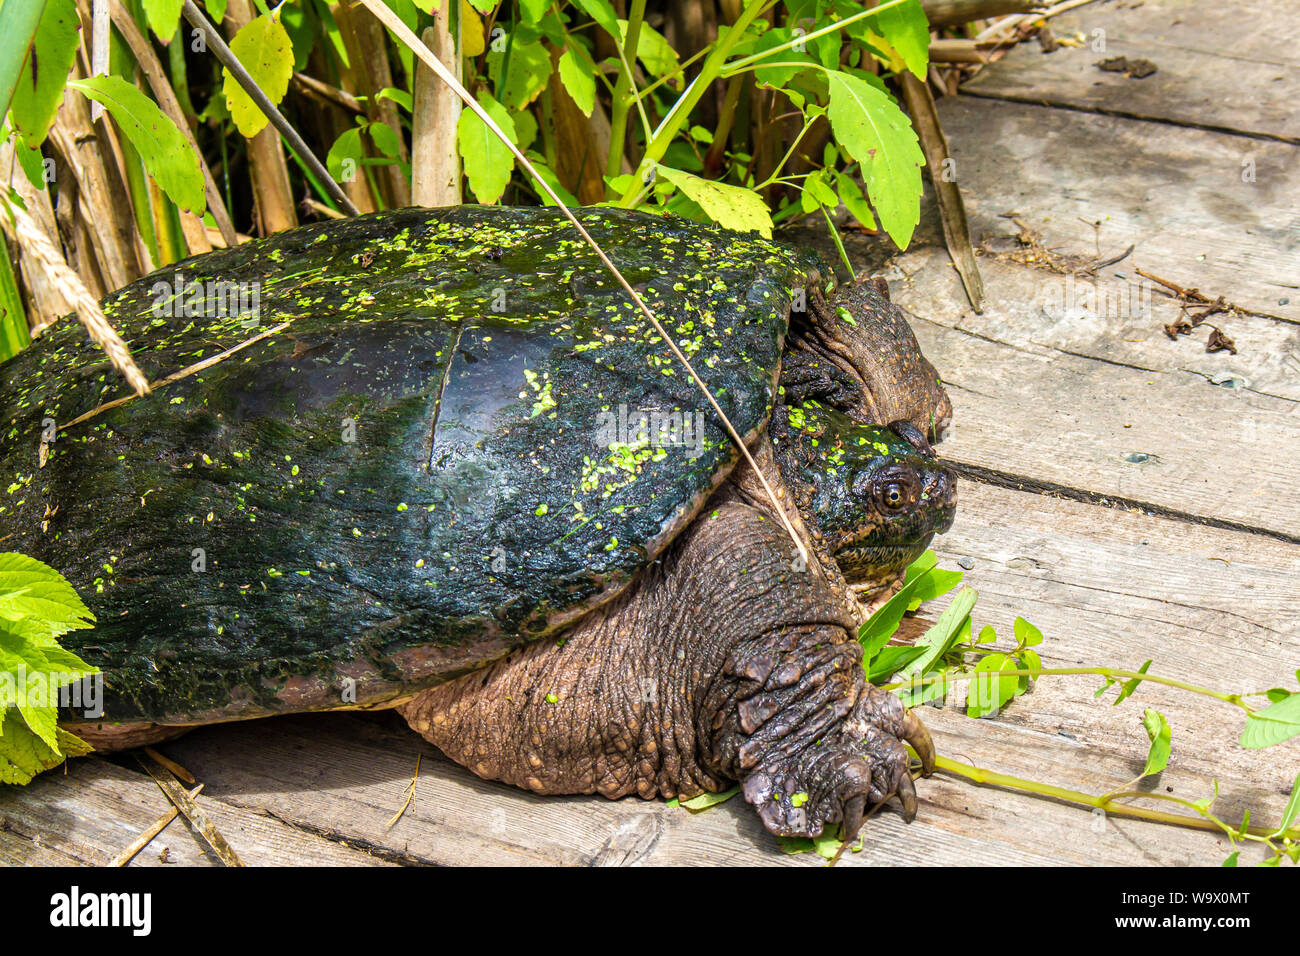 A common snapping turtle emerges from the swampy wetlands and lush foliage lining a boardwalk, into the sunlight. Stock Photo